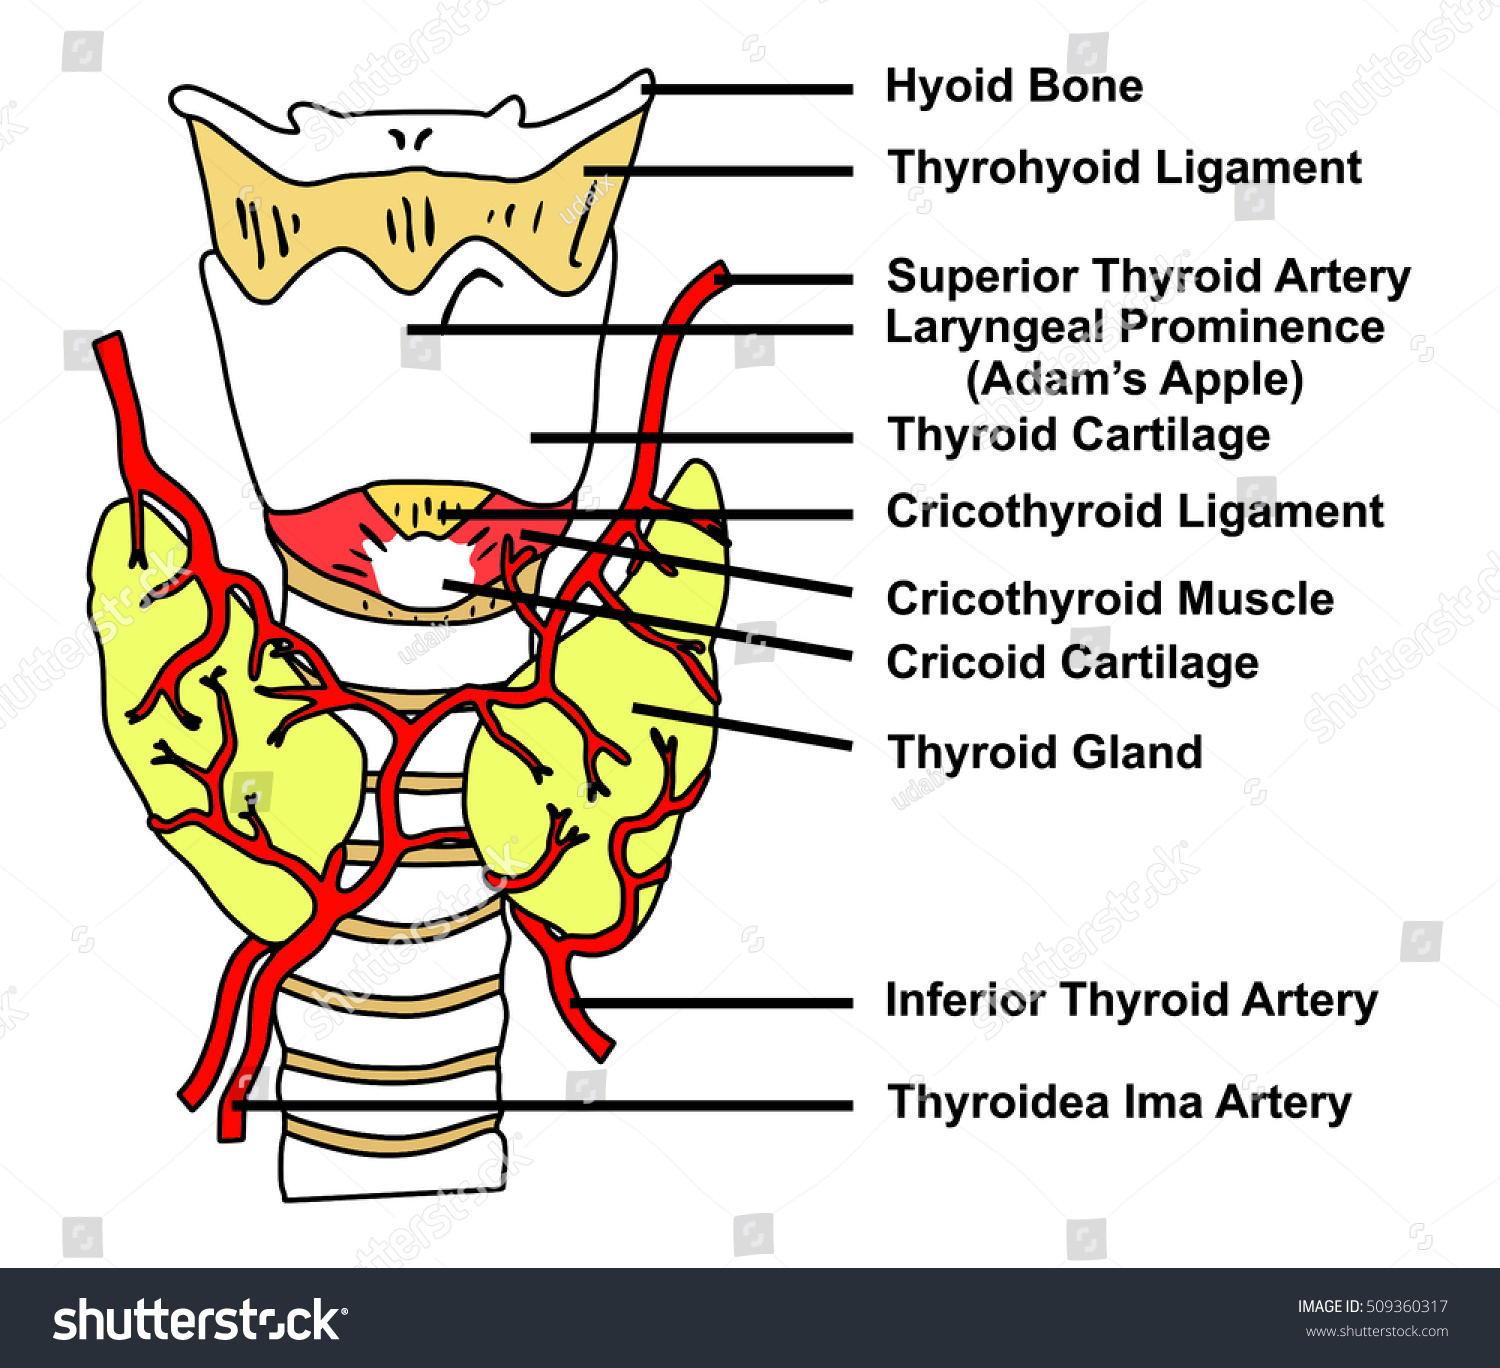 Thyroid Gland Anatomical Structure Arteries Supply Stockillustration